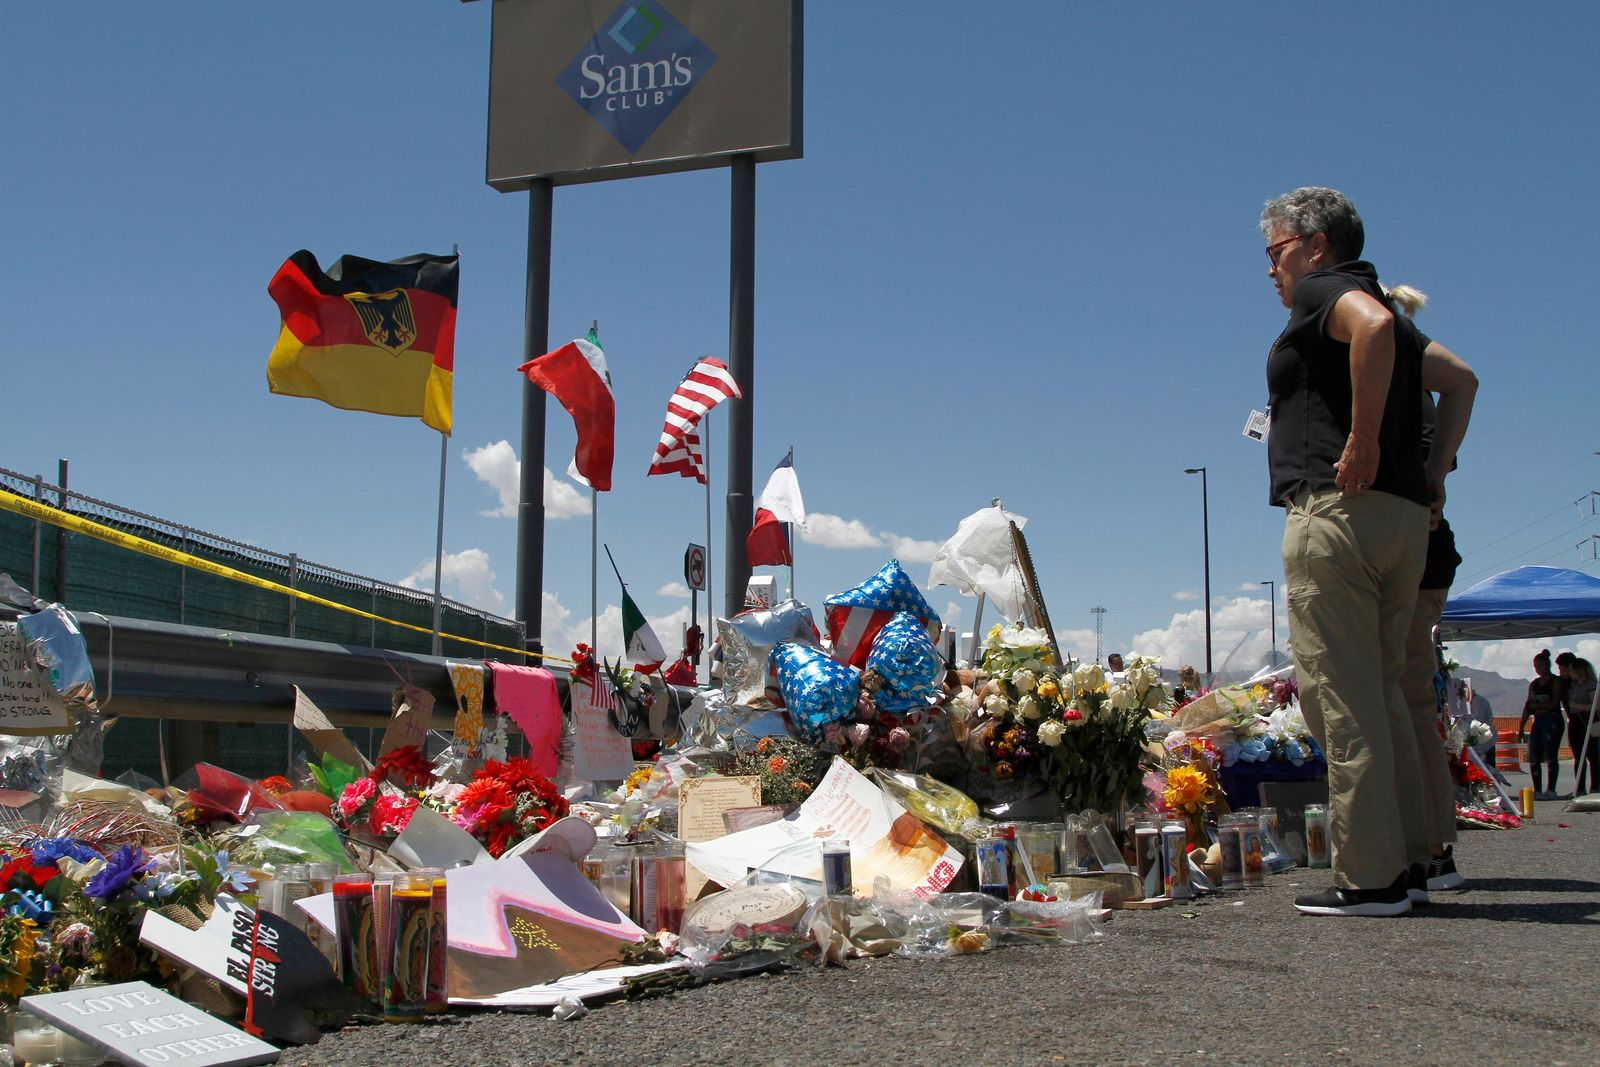 In this Aug. 12, 2019 photo, mourners visit the makeshift memorial near the Walmart in El Paso, Texas, where 22 people were killed in a mass shooting that police are investigating as a terrorist attack targeting Latinos.{ } (AP Photo/Cedar Attanasio)